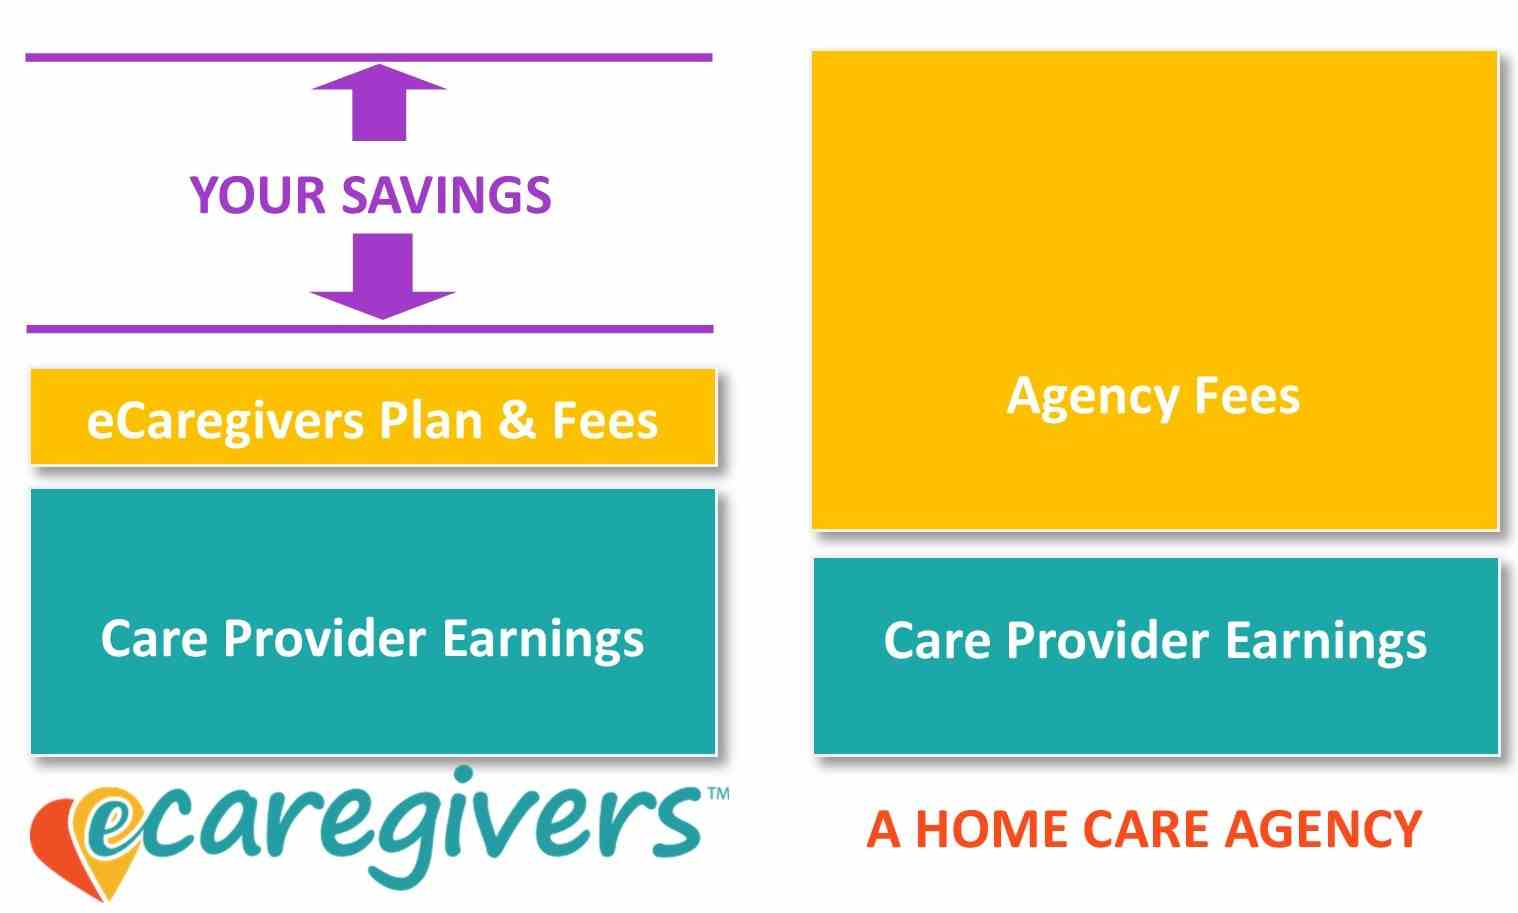 your savings with eCaregivers